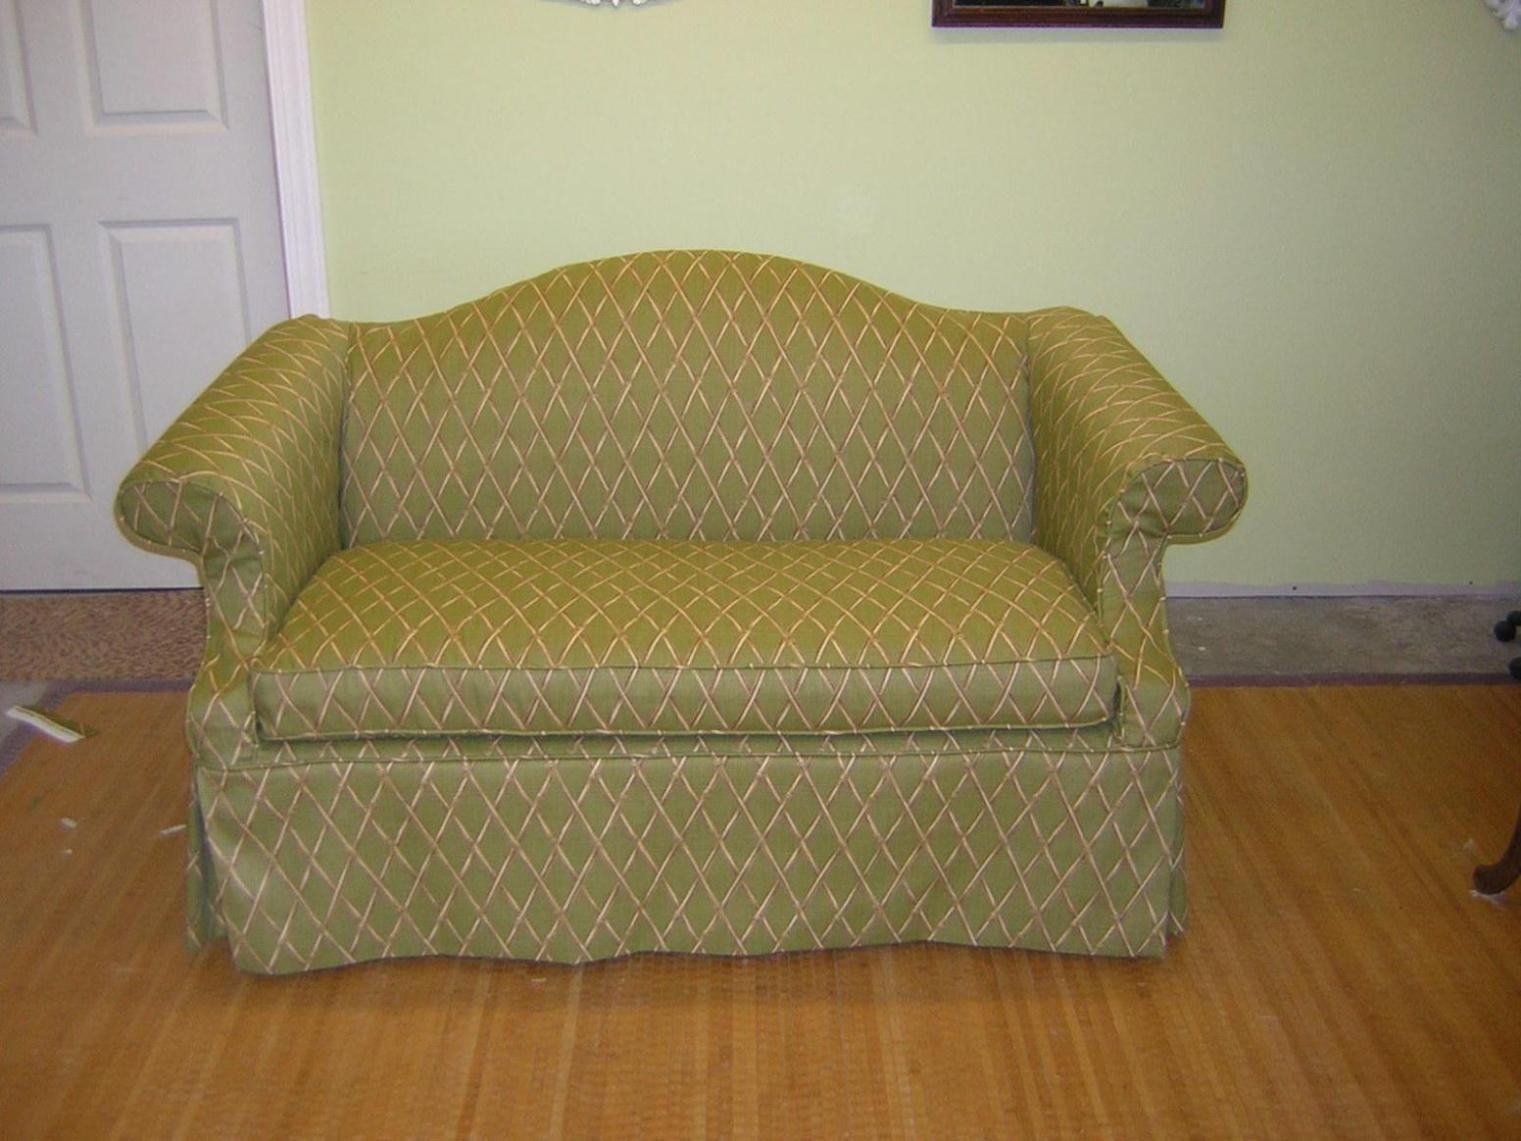 Loveseat Slipcover T Cushion : Doherty House – Contemporary Throughout Loveseat Slipcovers T Cushion (View 20 of 20)